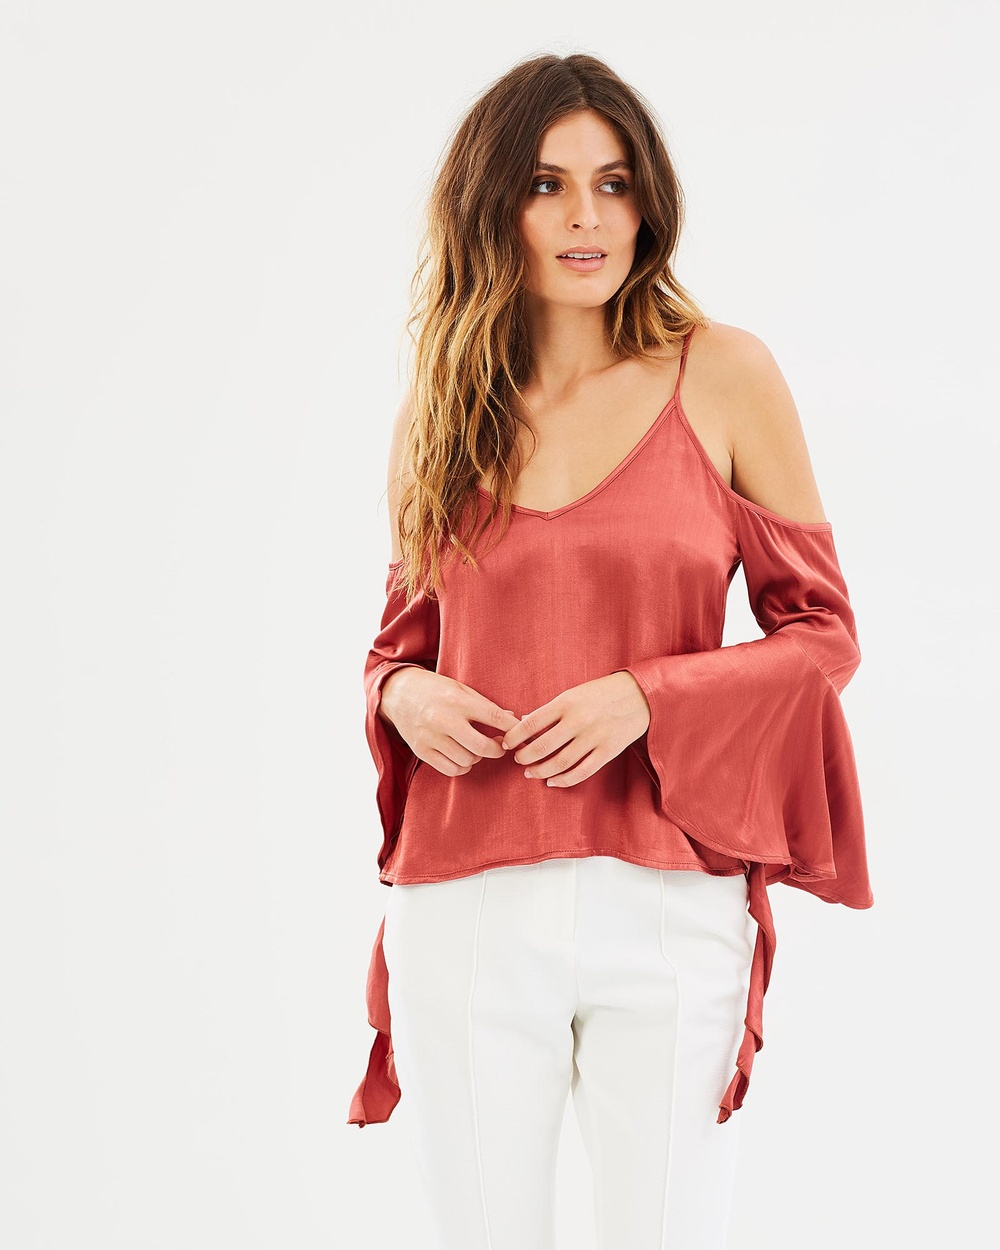 Livingstone Cooper Gretel Blouse Tops Hot Sauce Gretel Blouse